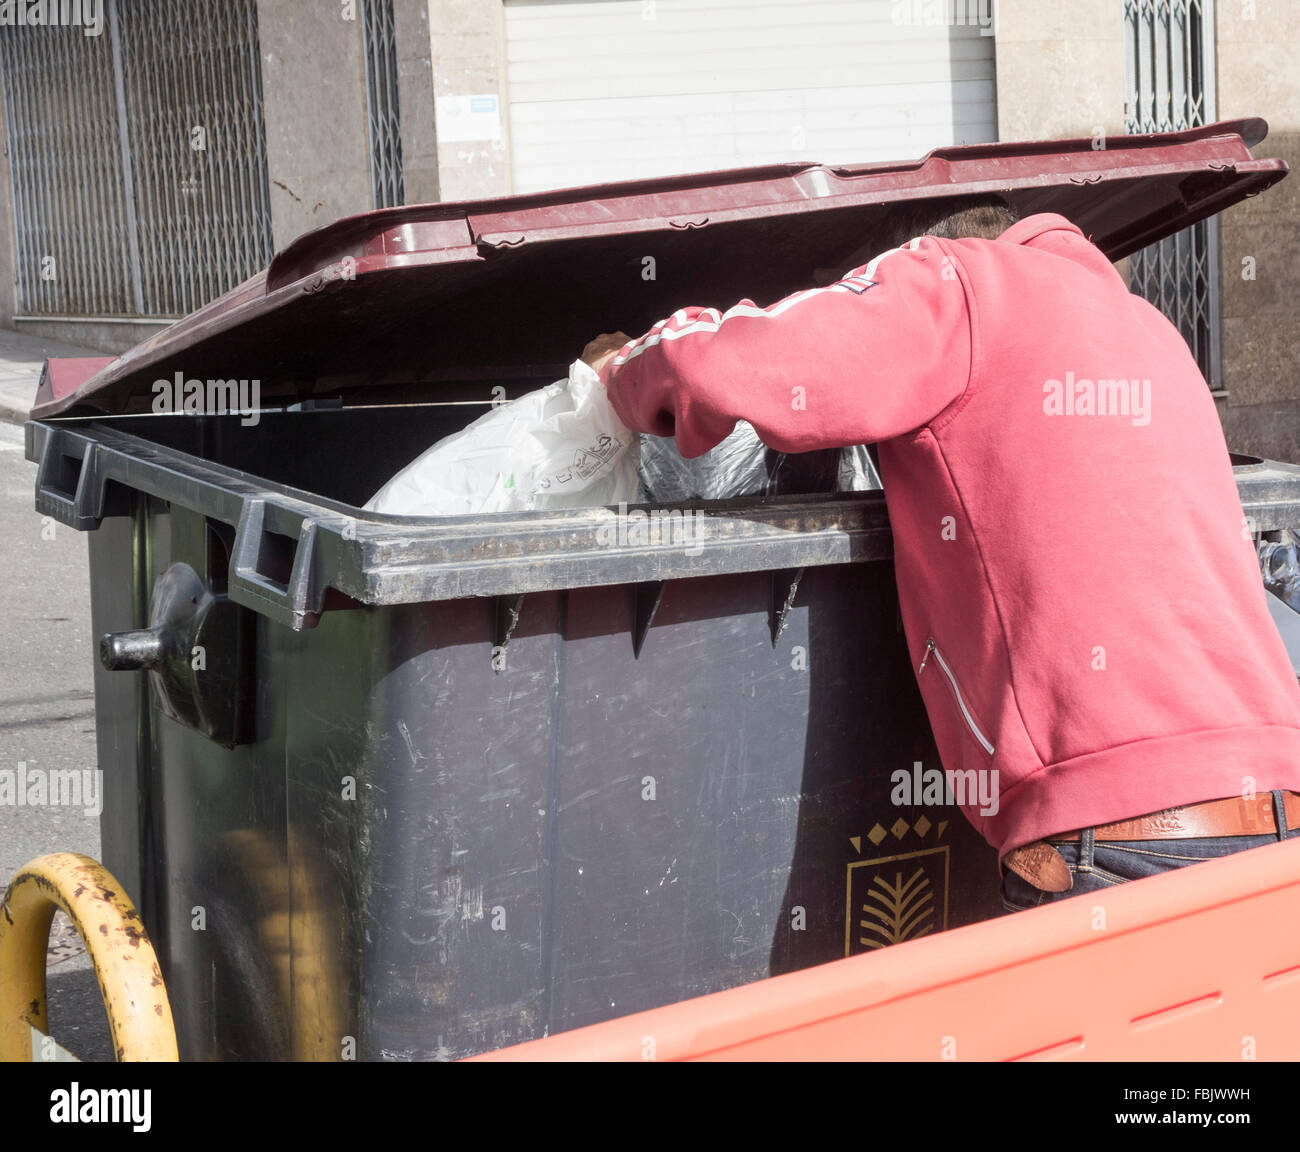 Homeless man rummaging  through household  rubbish container in Spain - Stock Image